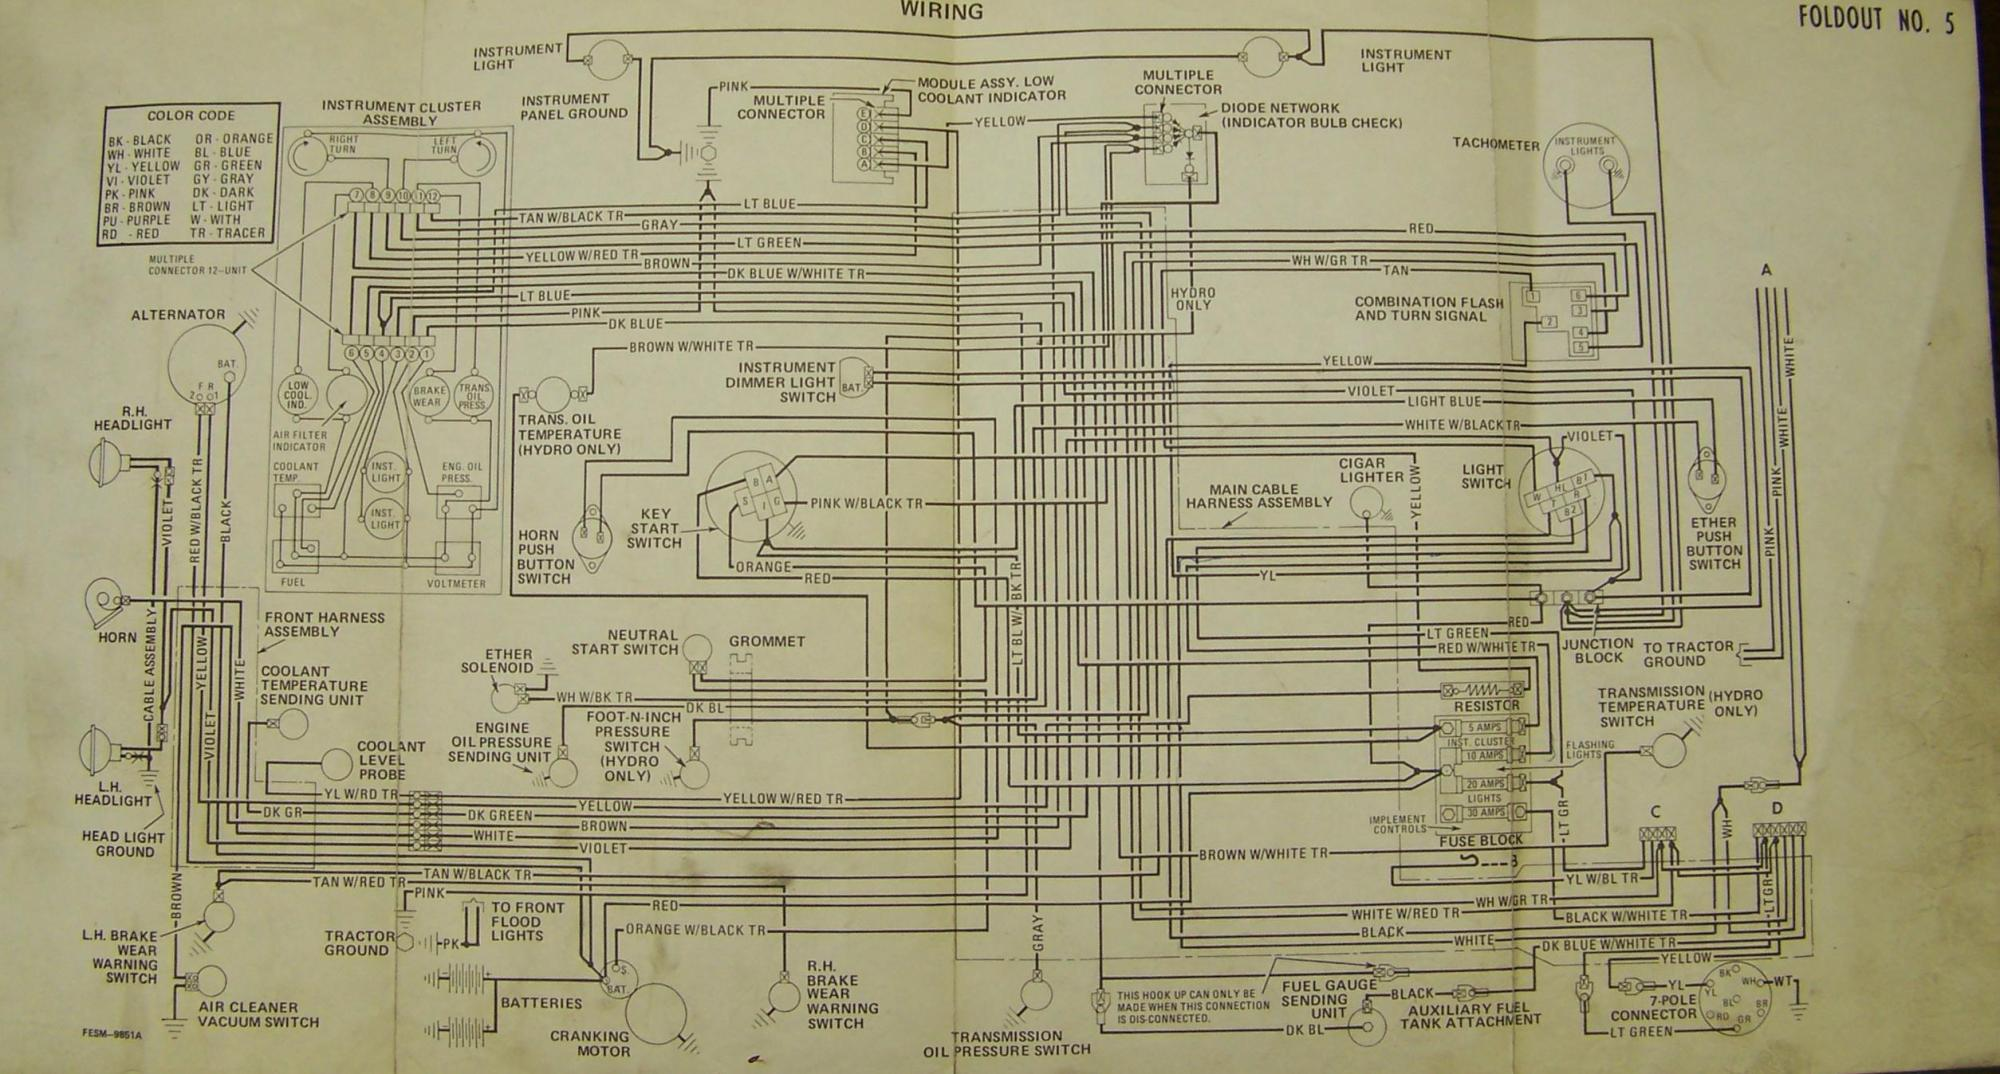 hight resolution of wrg 4669 ihc wiring diagrams ihc wiring diagram wrg 4669 ihc wiring diagrams